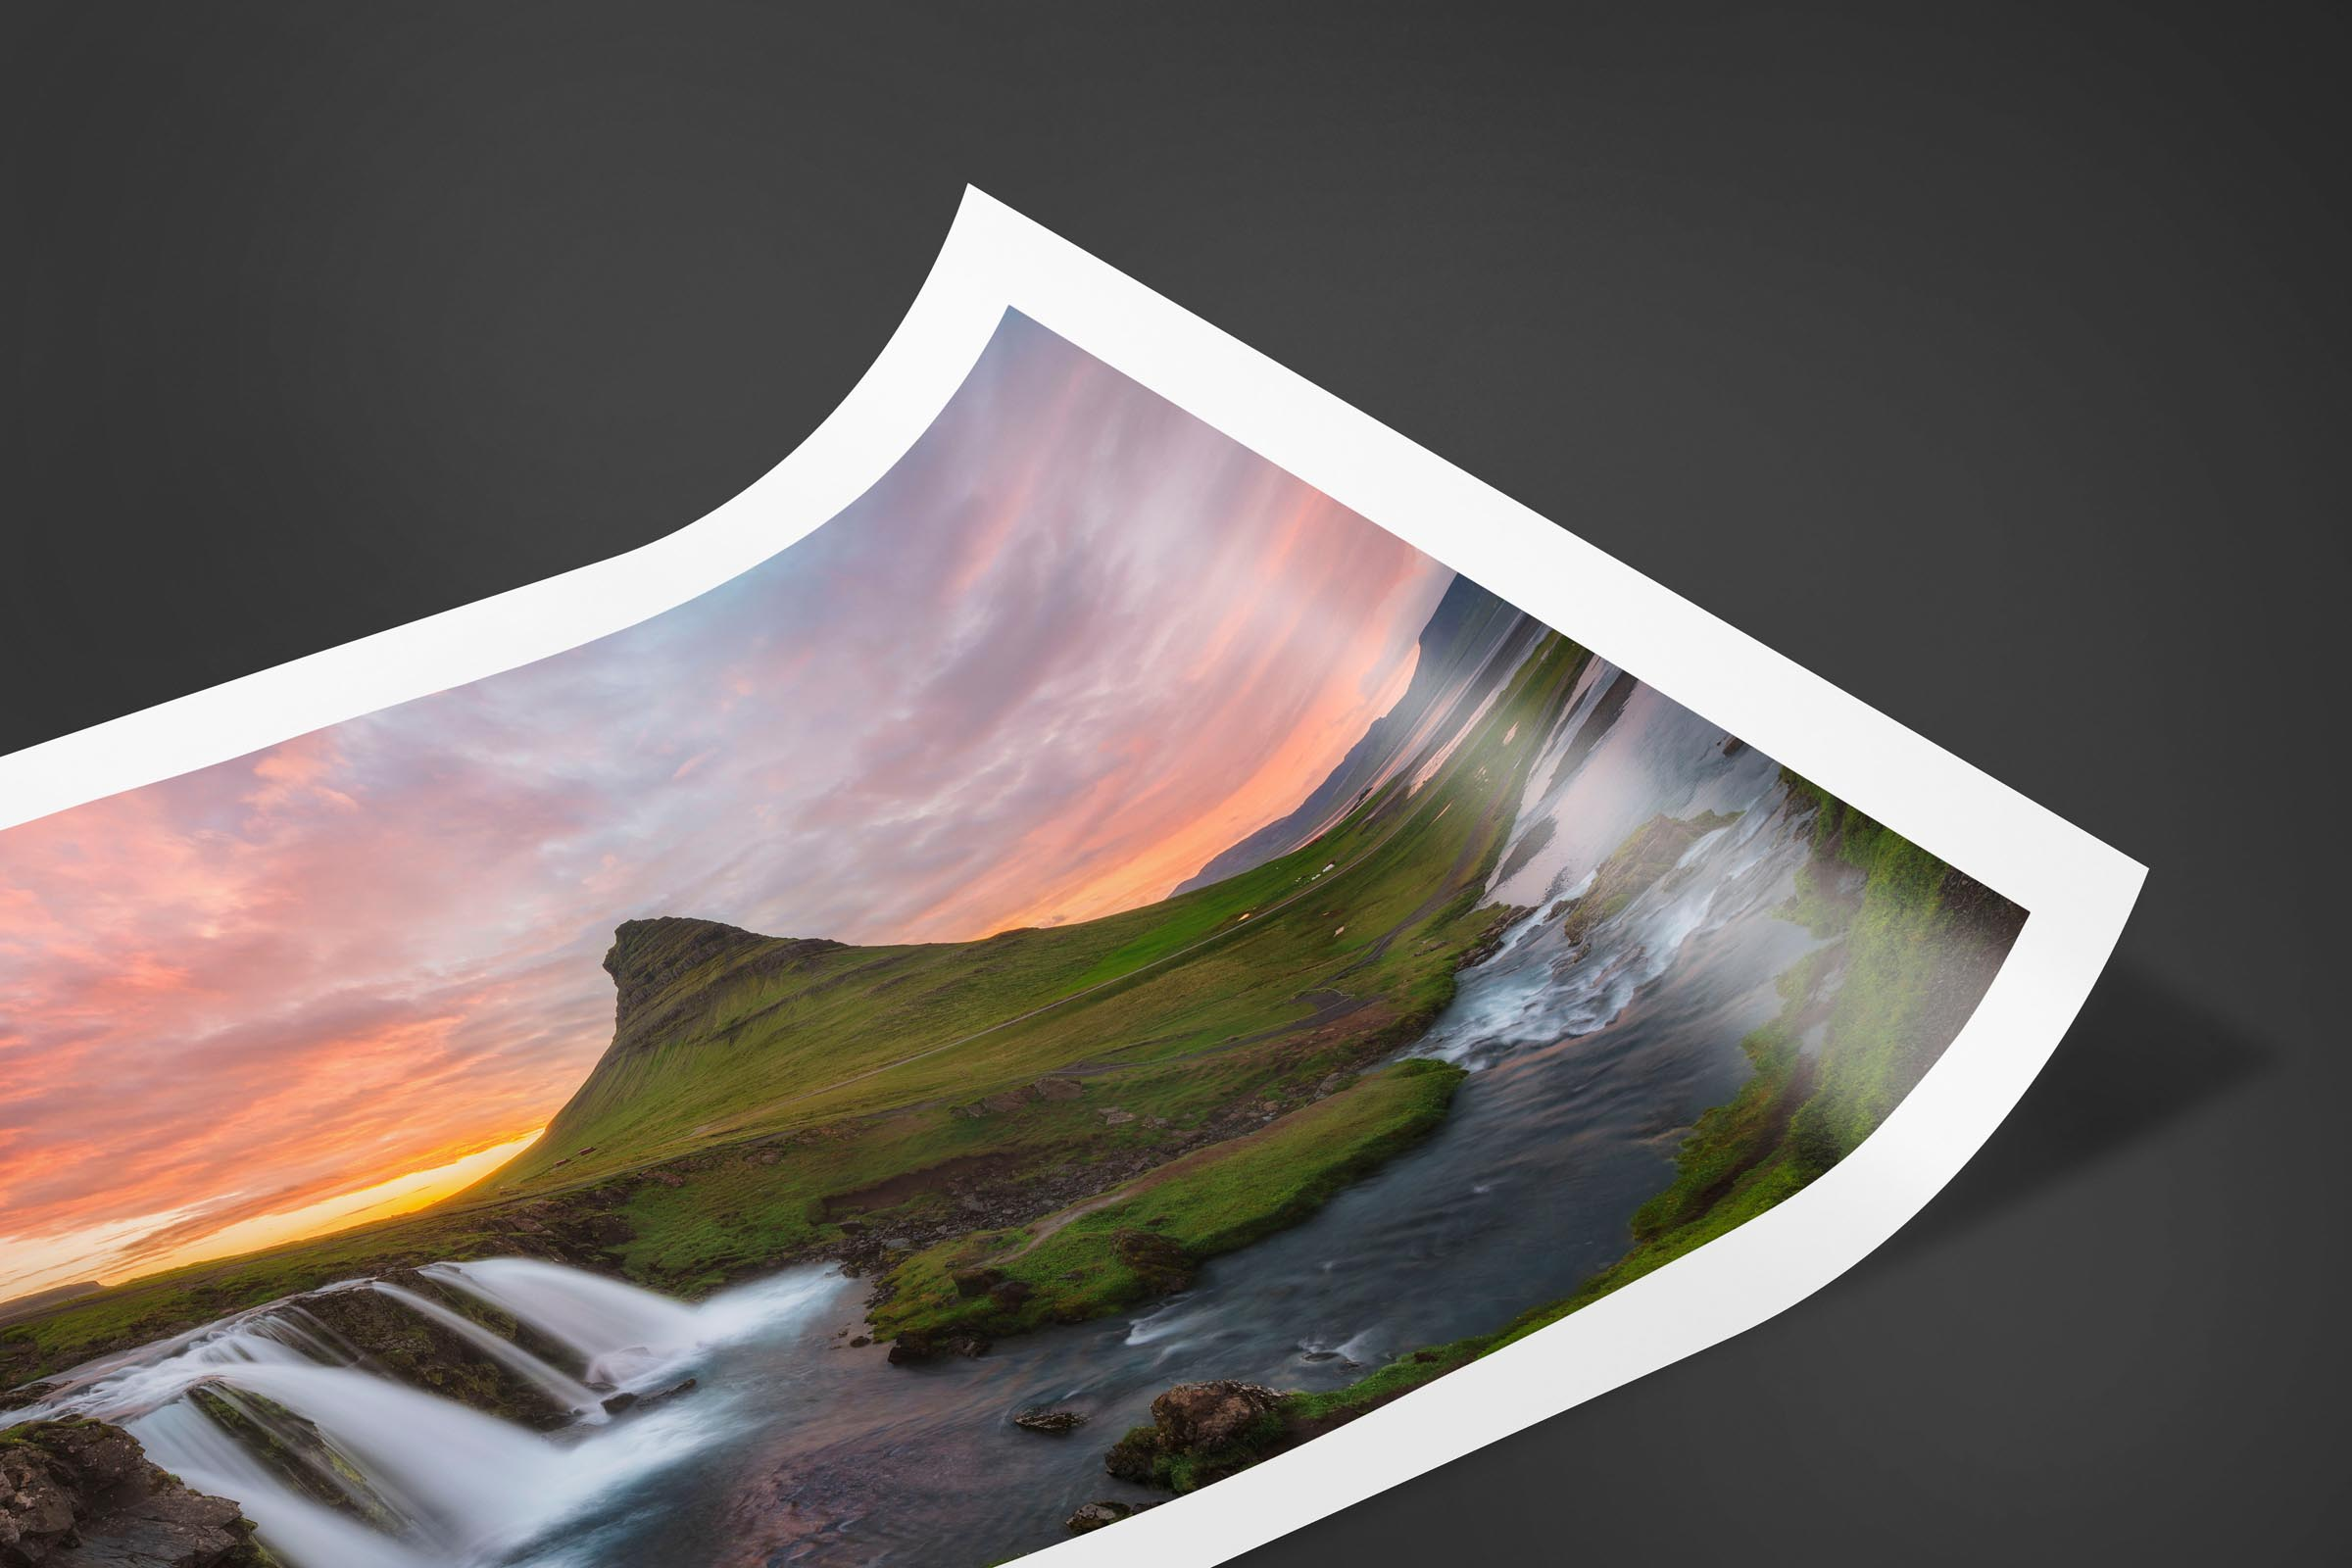 Fine art limited edition print of Kirkjufell Mountain in Snæfellsnes, Iceland by Brent Goldman Photography